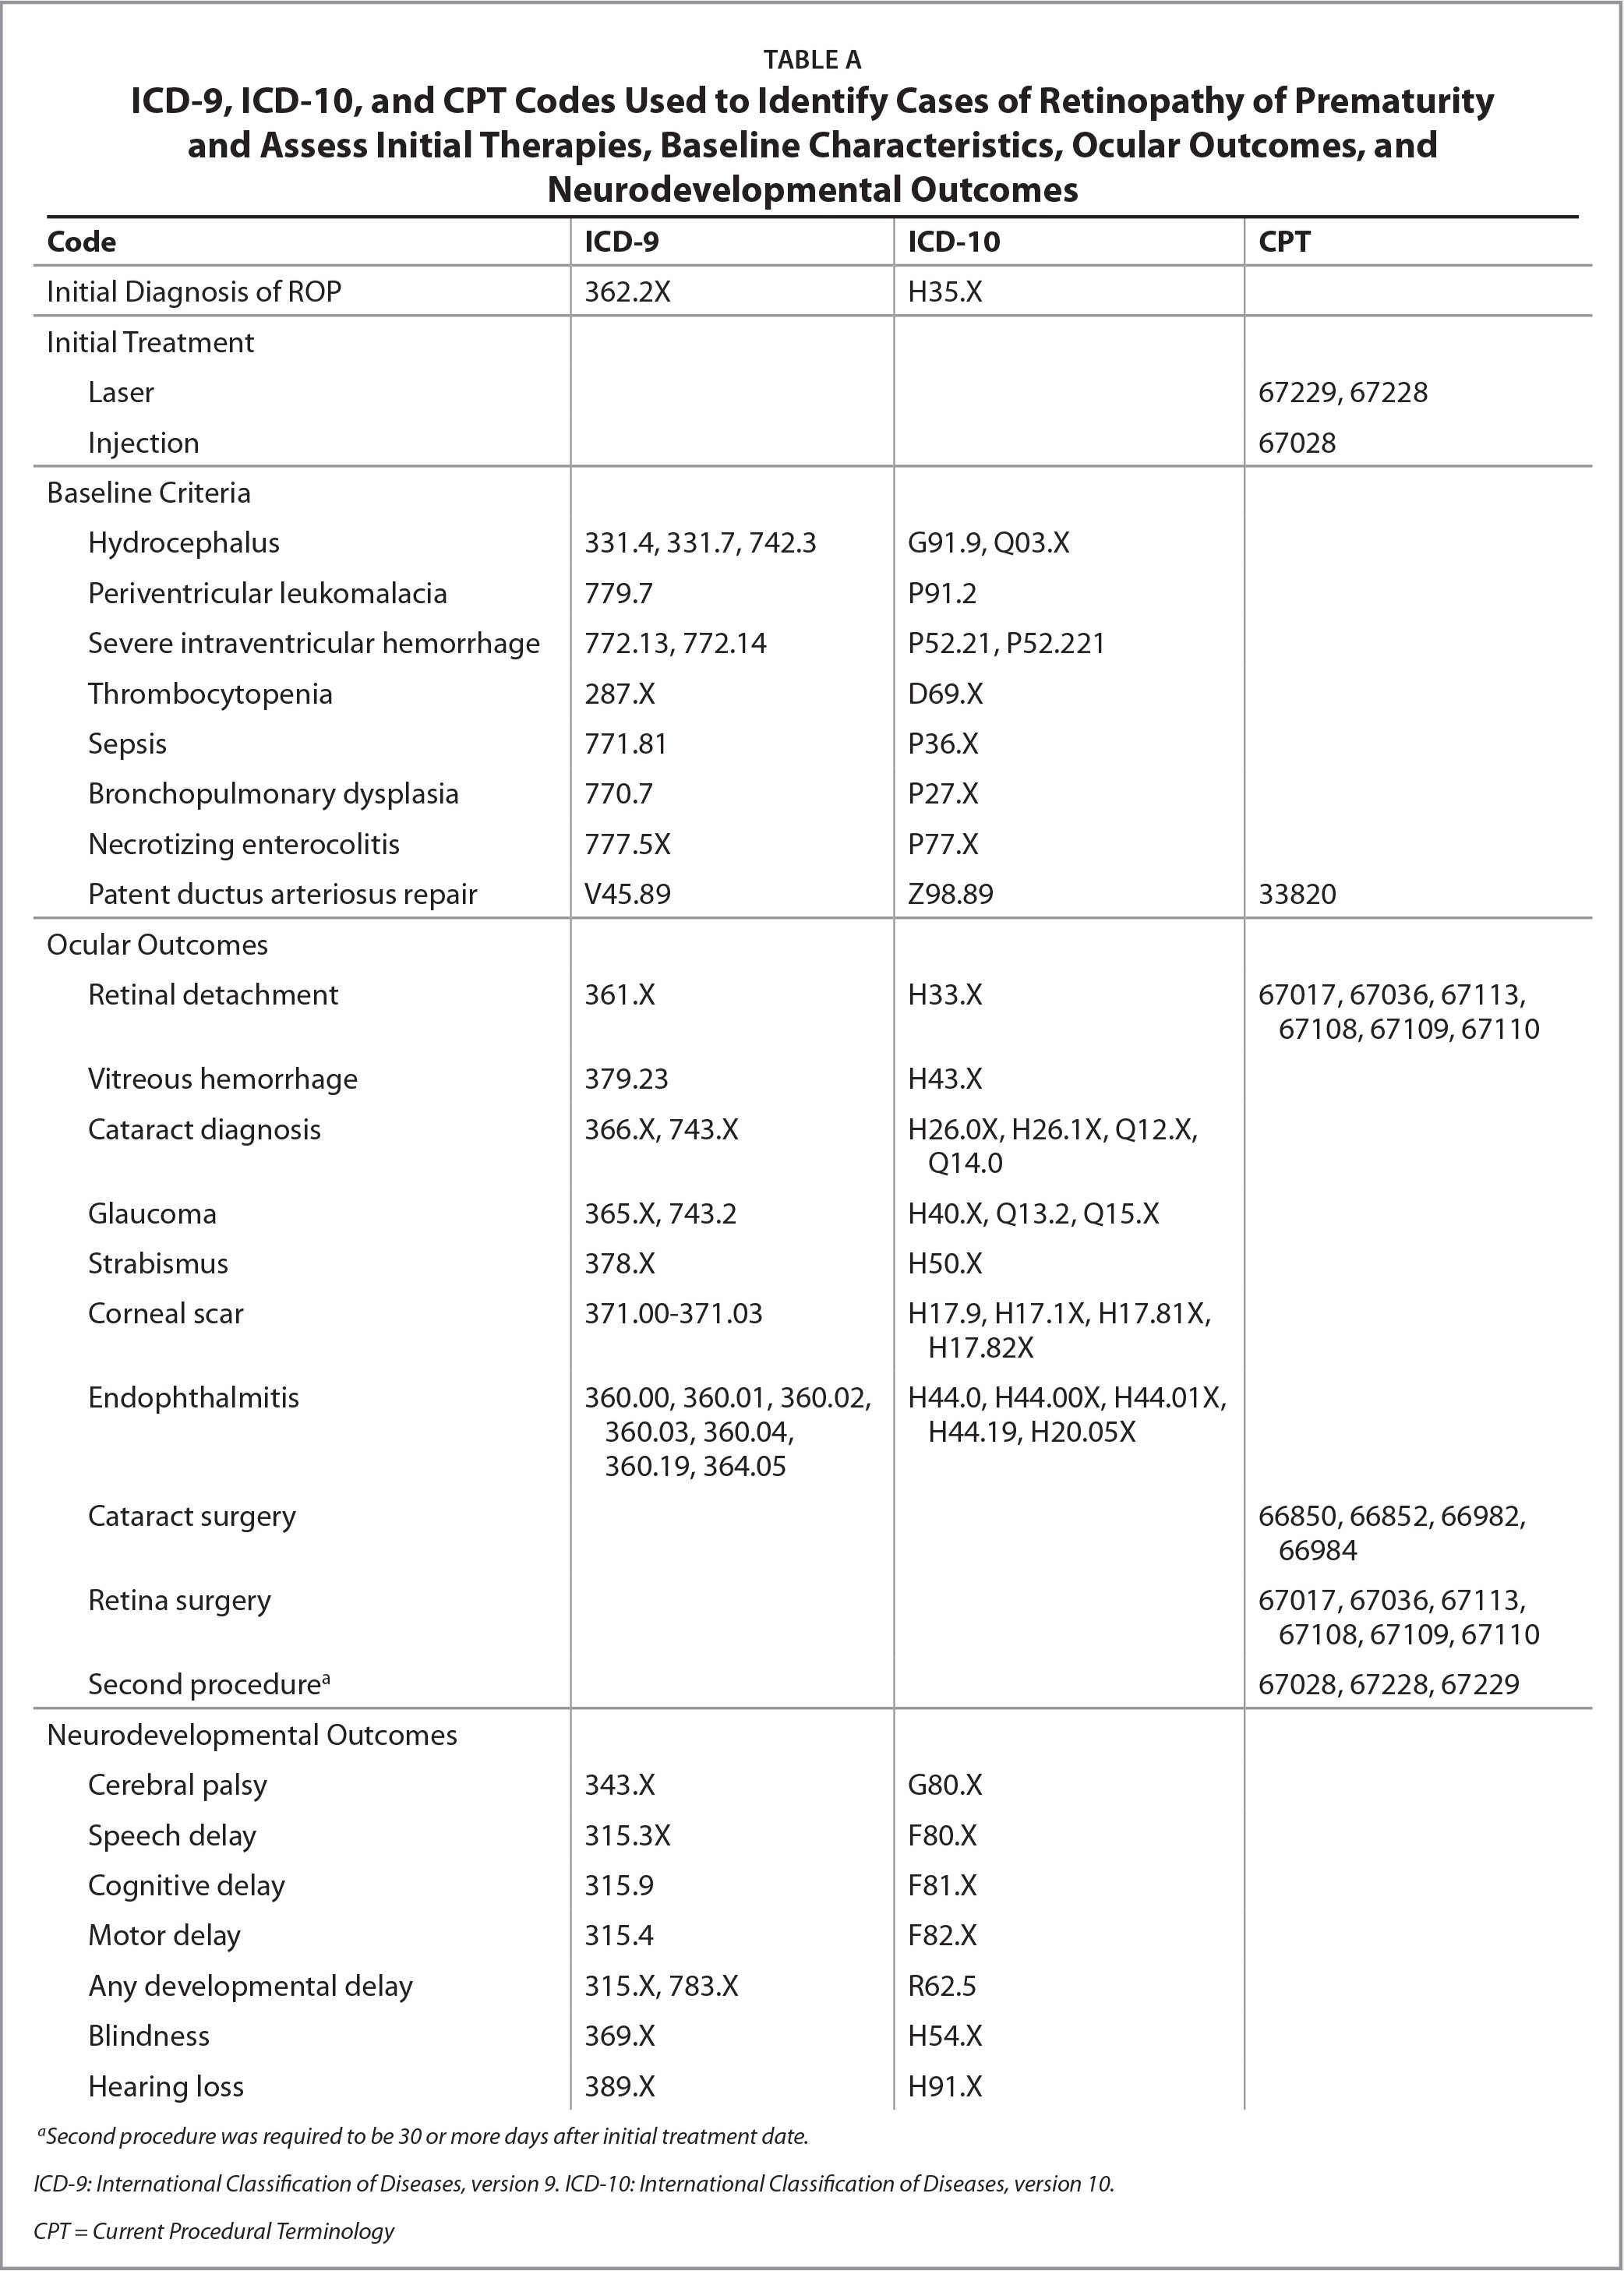 ICD-9, ICD-10, and CPT Codes Used to Identify Cases of Retinopathy of Prematurity and Assess Initial Therapies, Baseline Characteristics, Ocular Outcomes, and Neurodevelopmental Outcomes